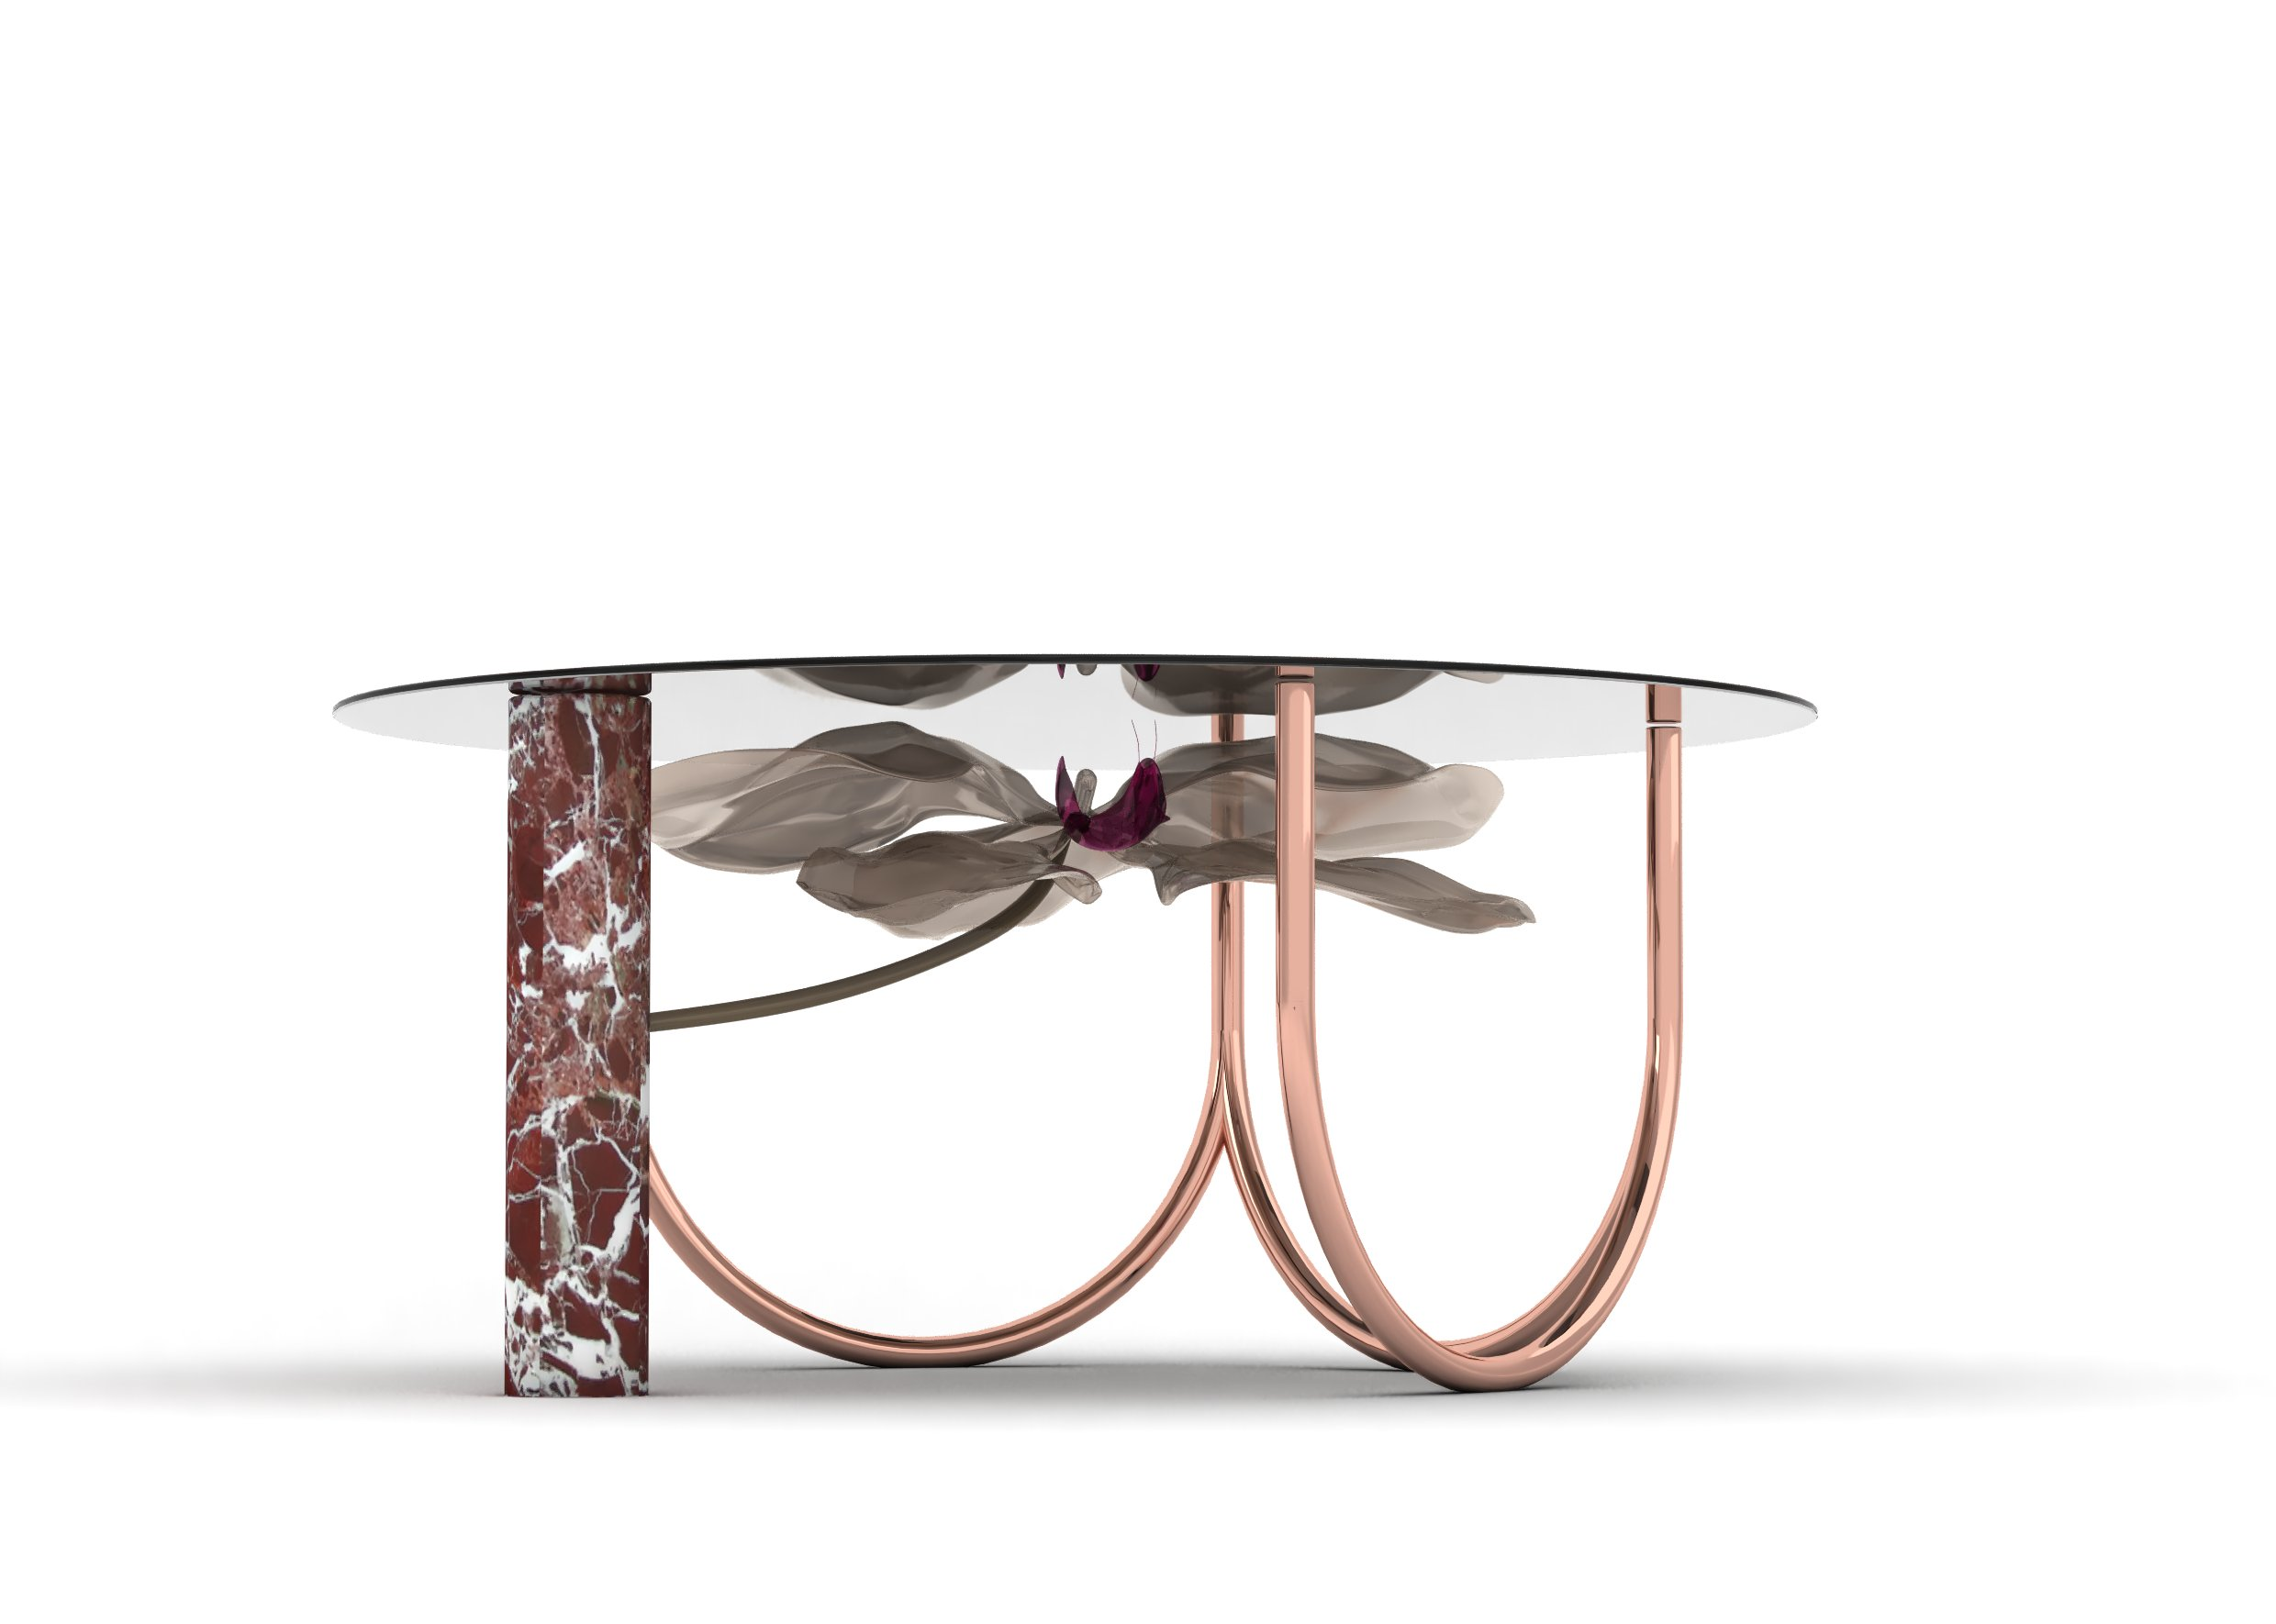 bespoke furniture, fine product design, italian furniture design, luxury design